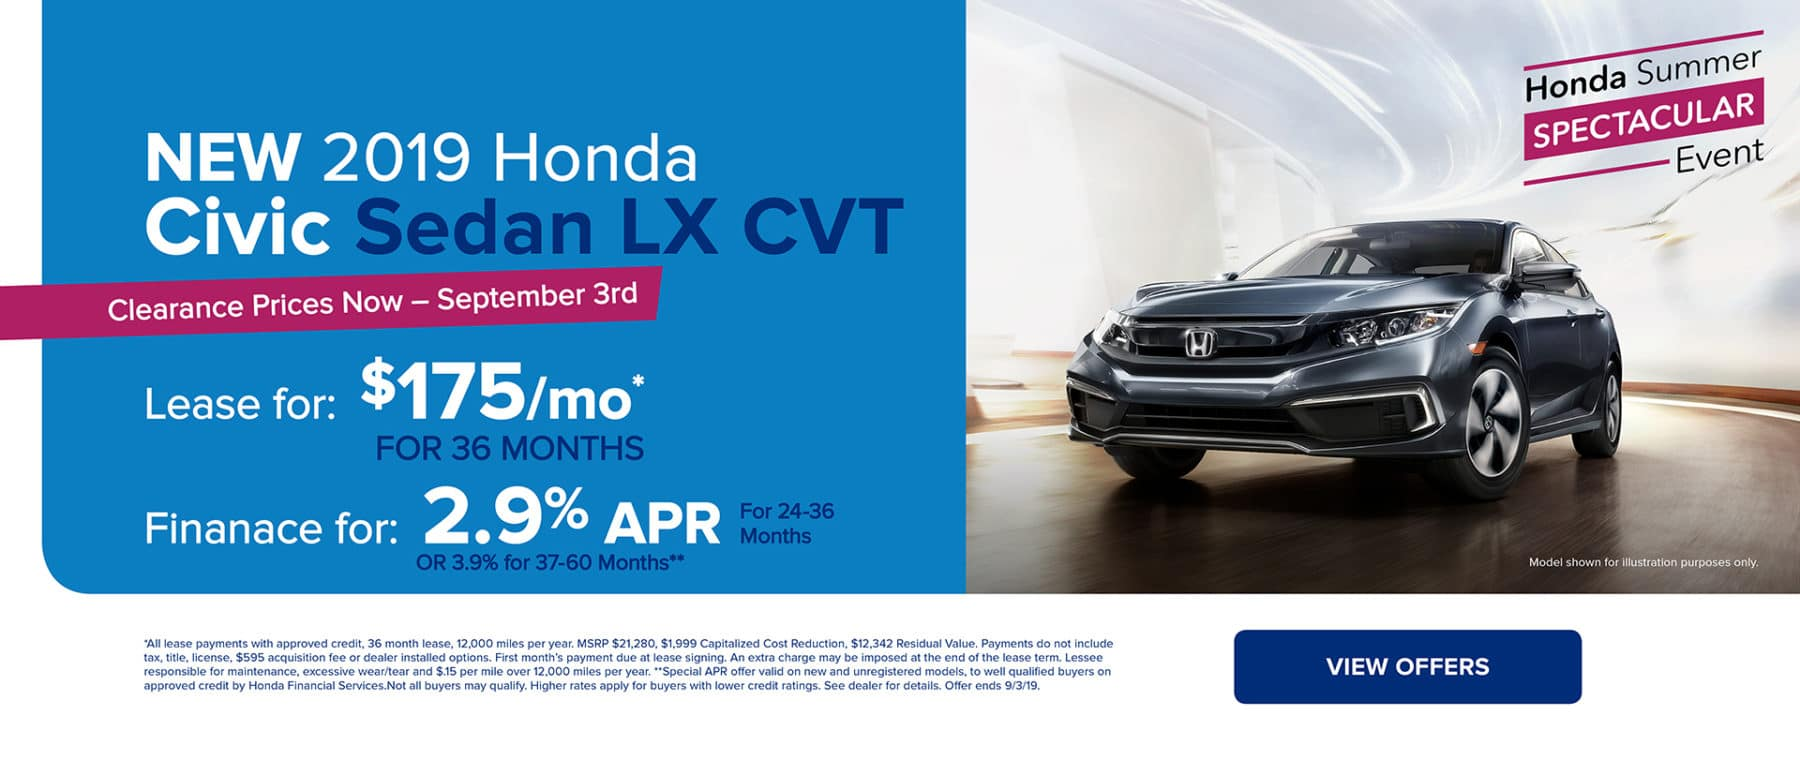 Honda Dealerships In Louisiana >> Richards Honda New Honda And Used Car Dealer In Baton Rouge La